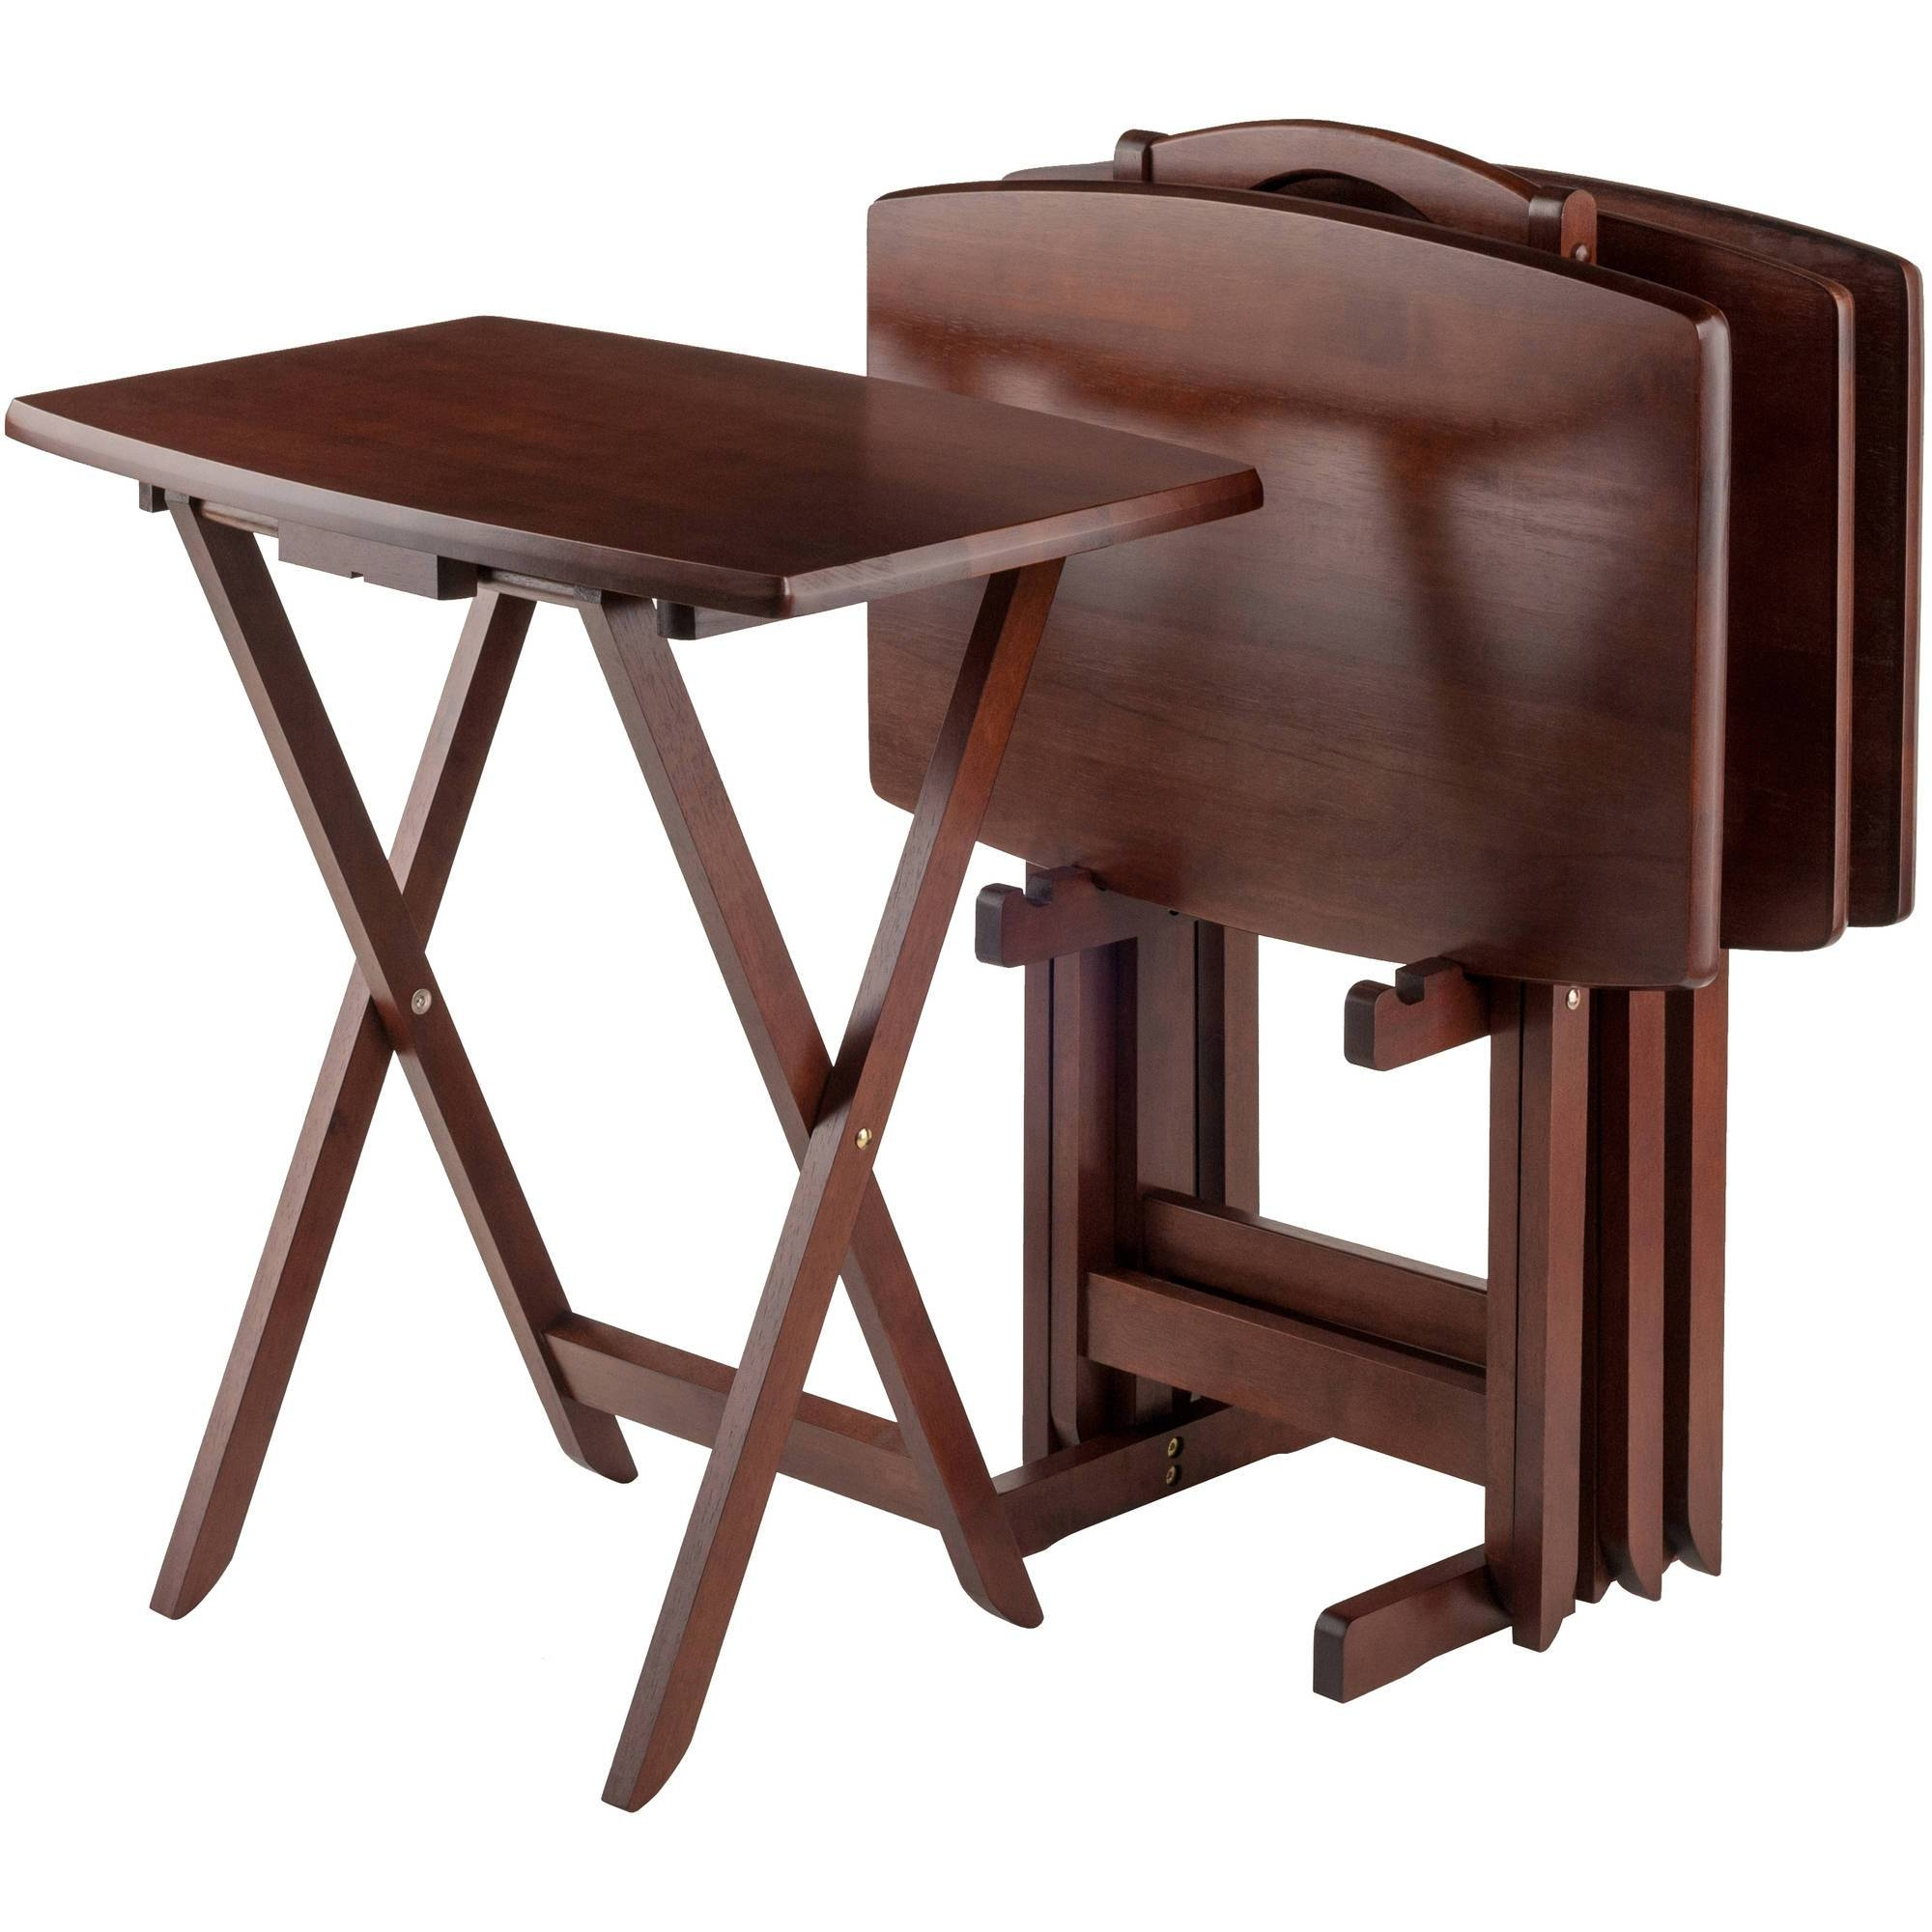 Tv Tray Tables - Walmart for Folding Tv Trays With Stand (Image 8 of 15)